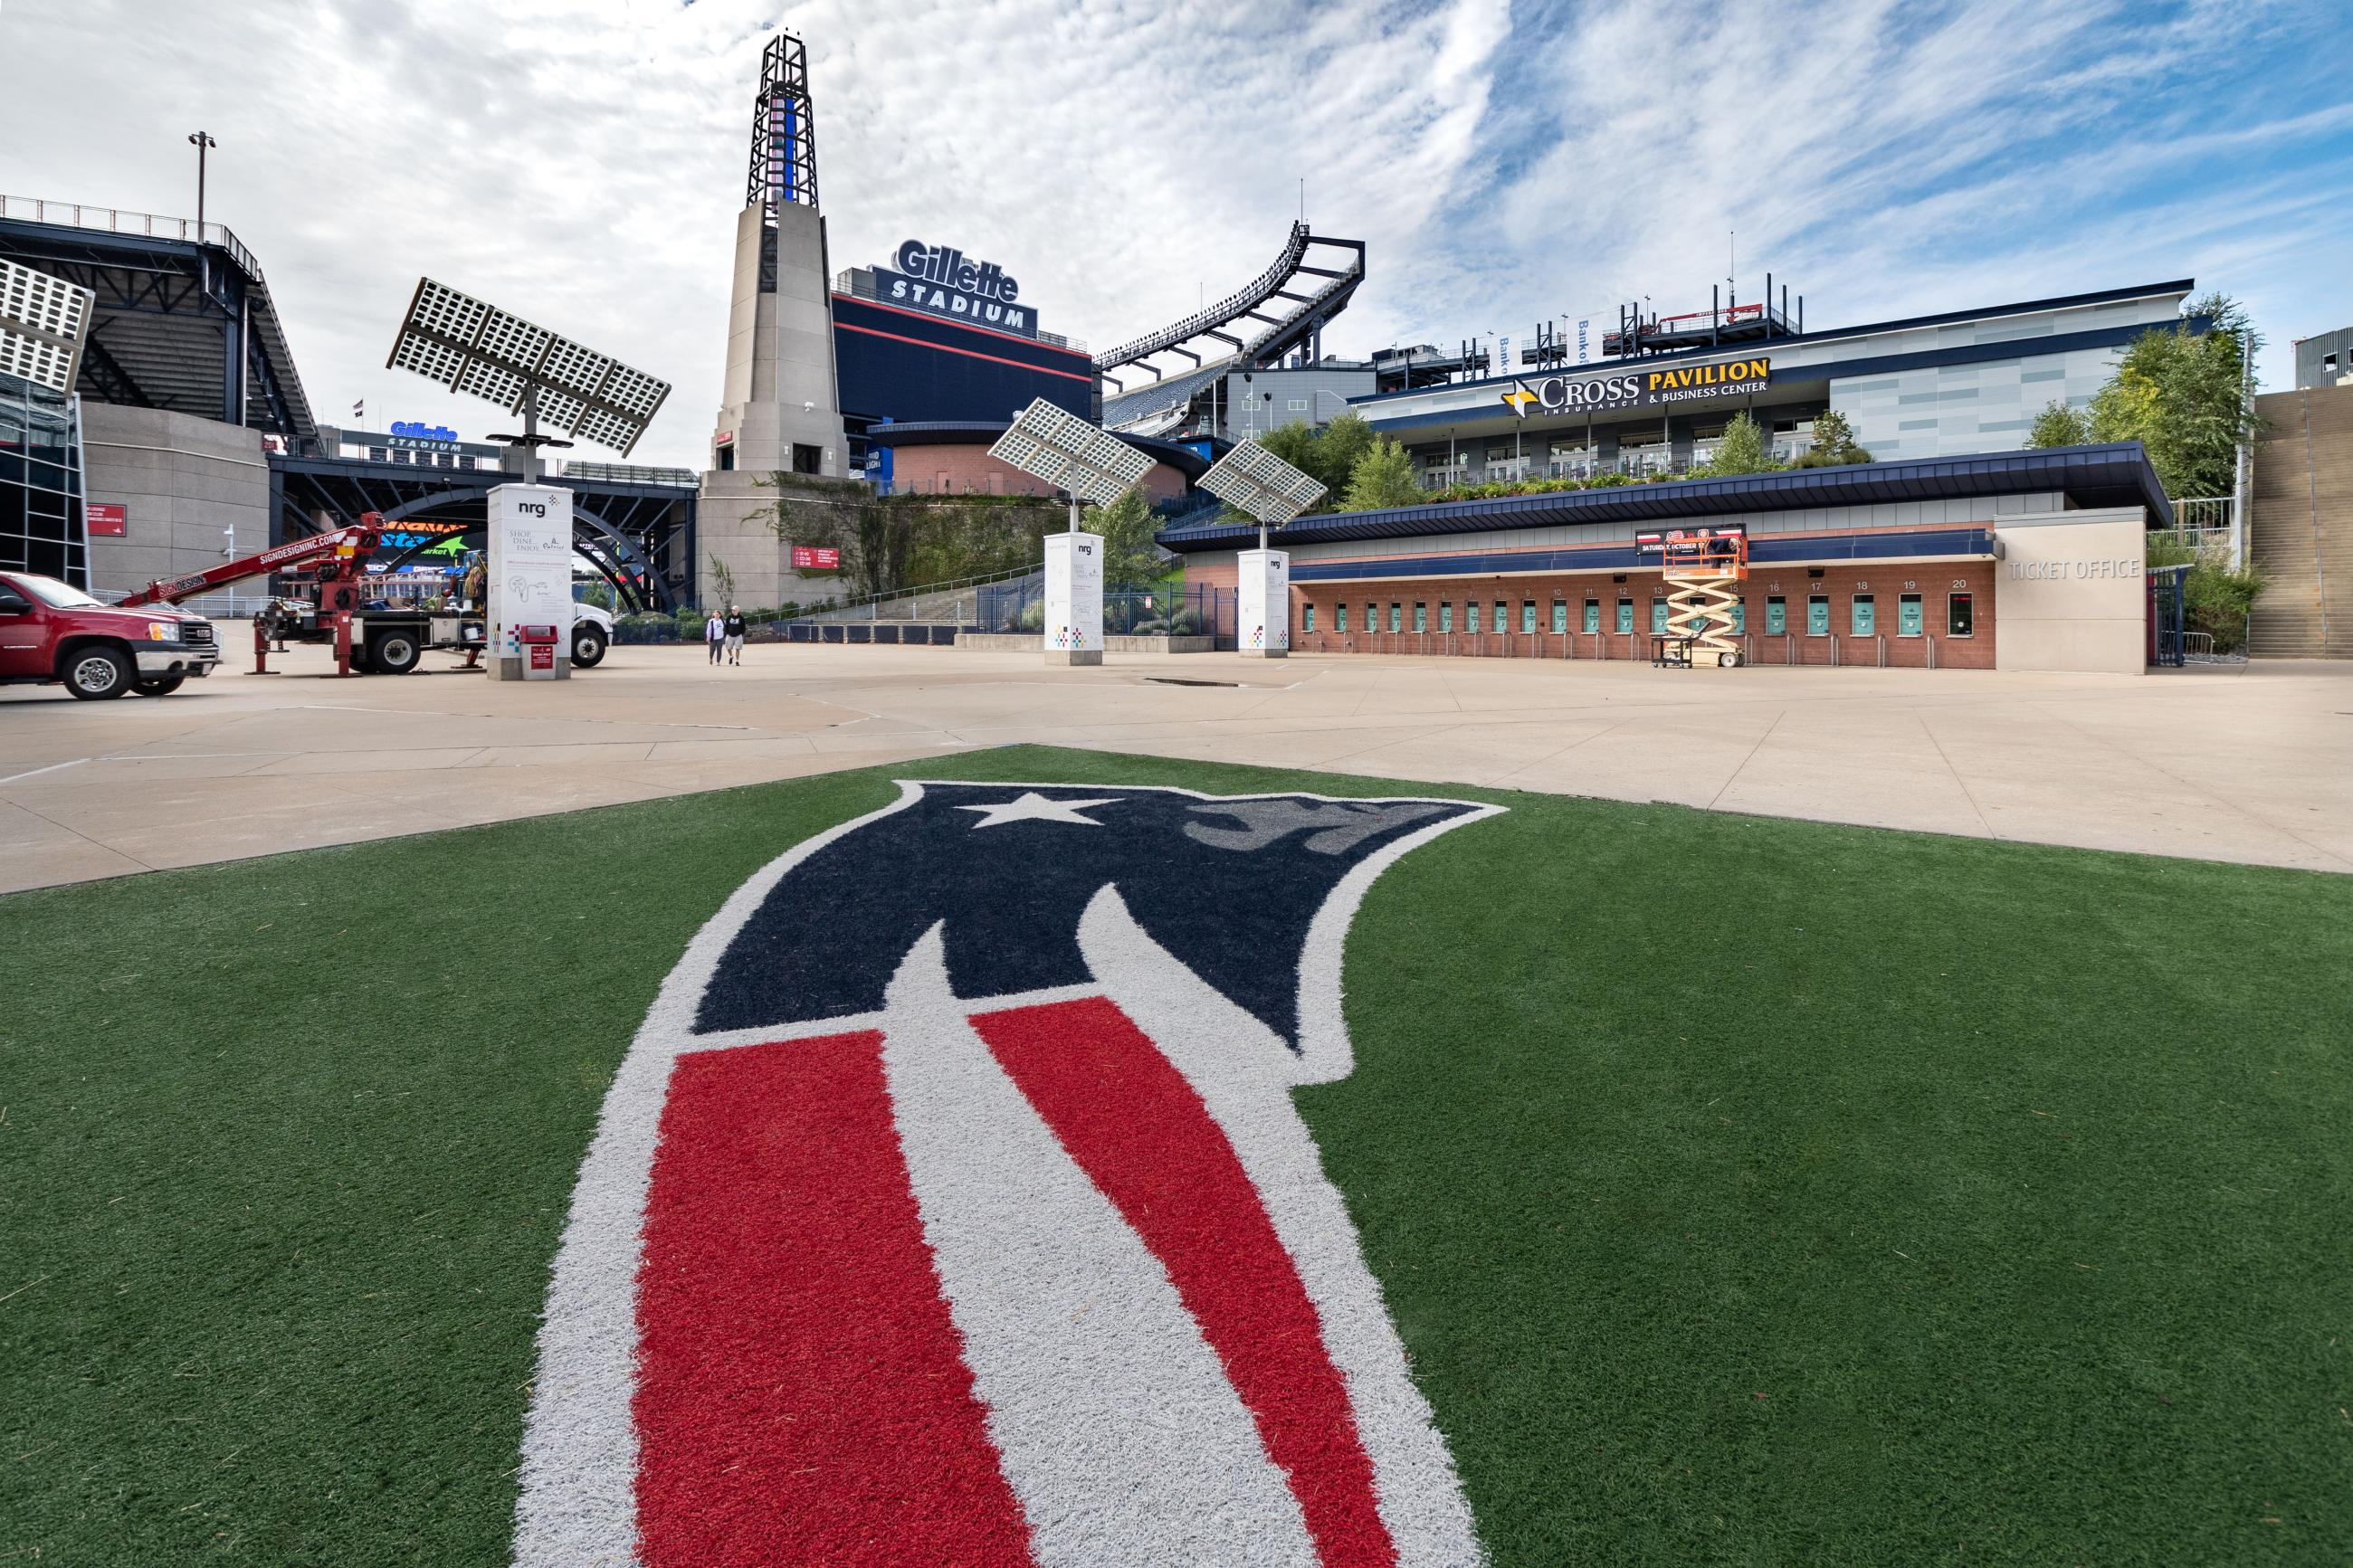 View of Gillette Stadium with the Patriots logo